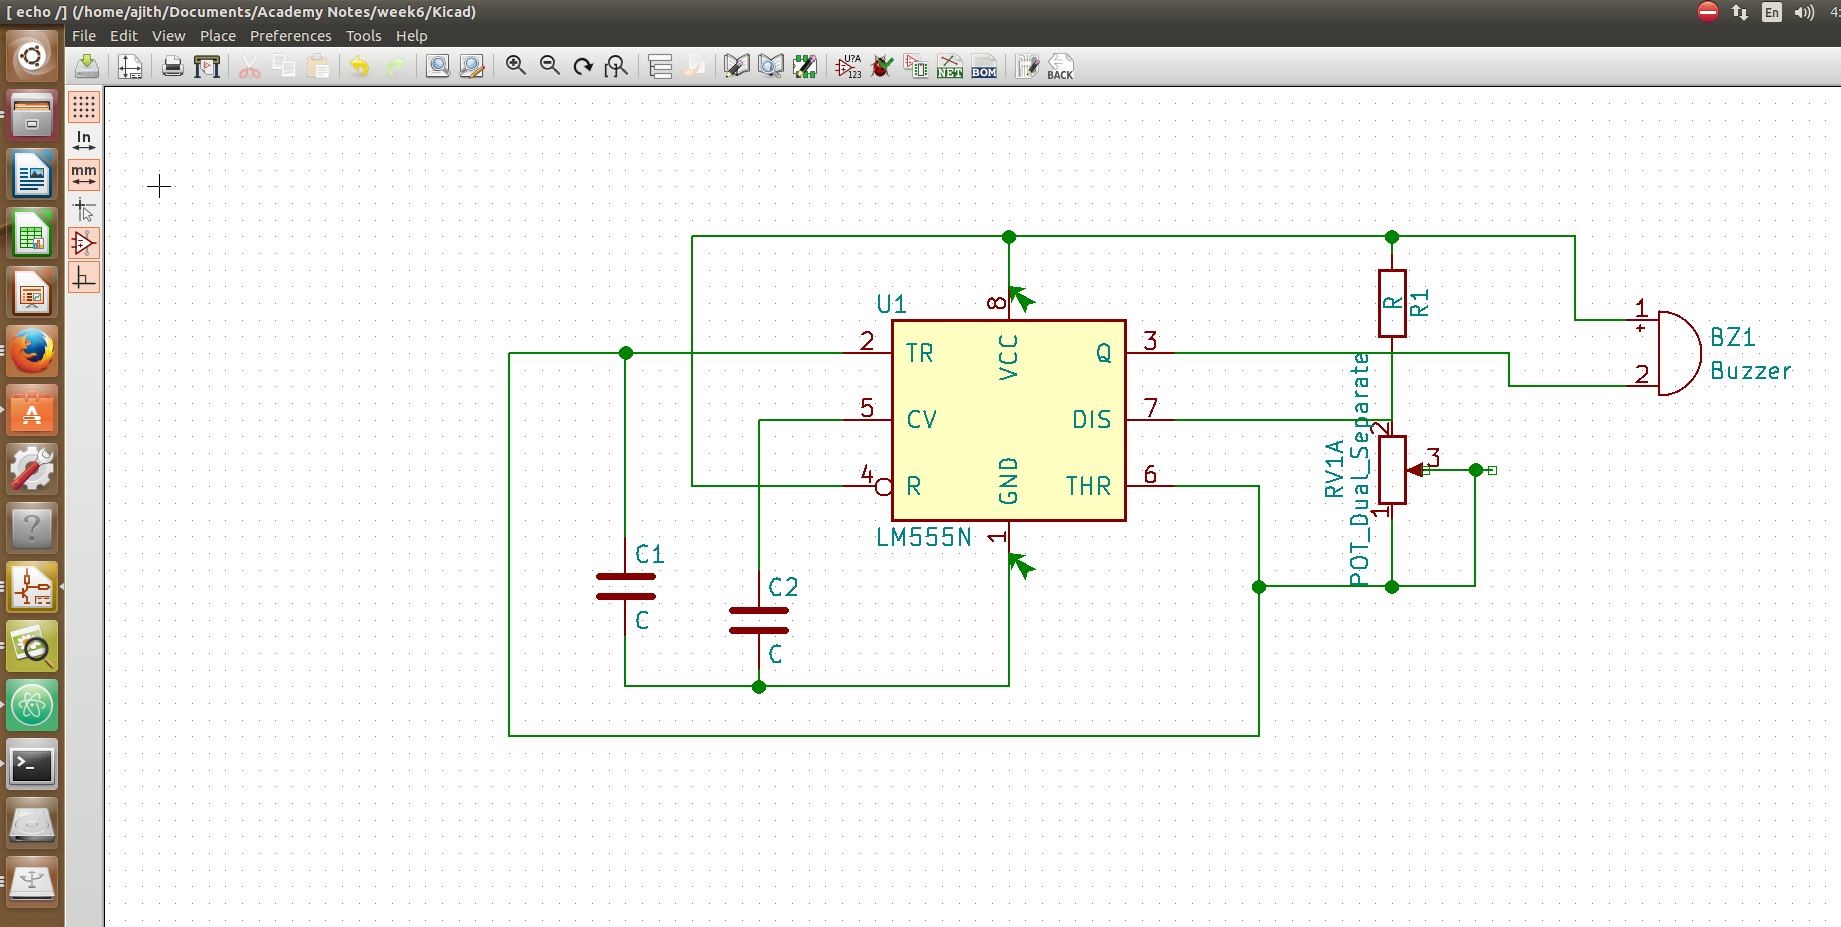 Ajiths Fab Diary 2017 Circuit Simulation And Pcb Design With Tina One Of The Main Intersting Thing In This Software Is That We Can Vie Boards 3d I Used Viewer Option Available Kicad Below Showed